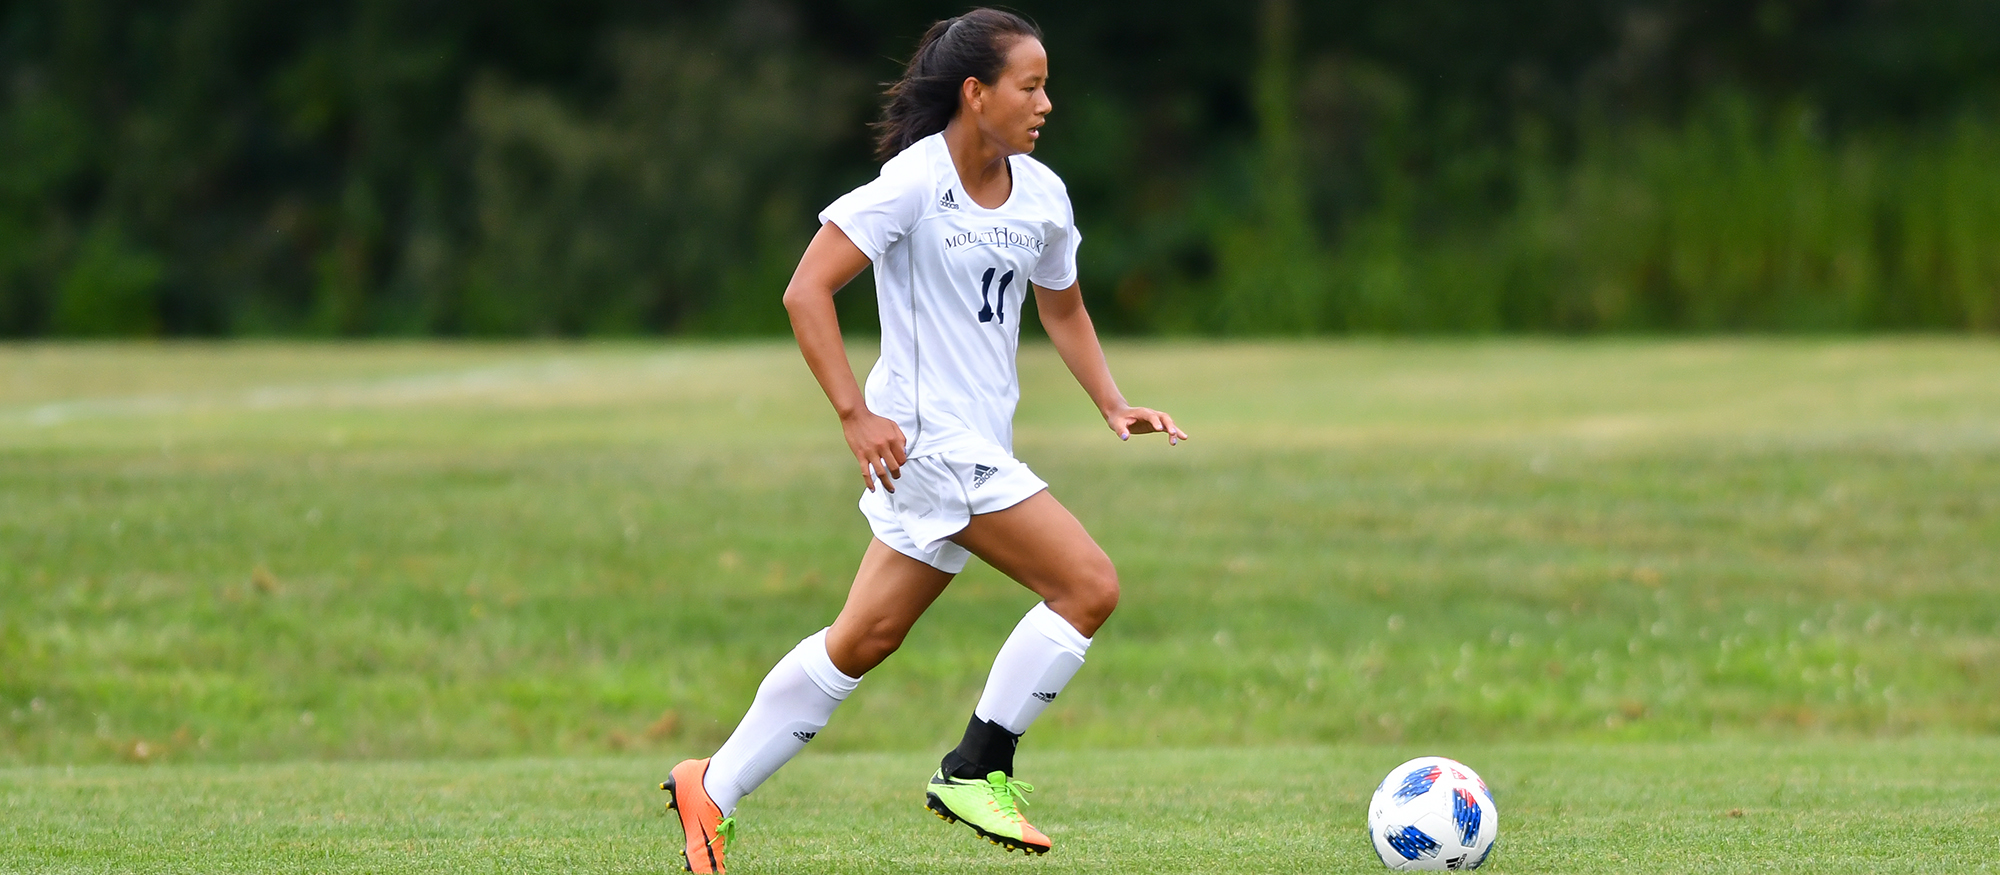 Soccer Falls to Nationally-Ranked Amherst in Non-Conference Play